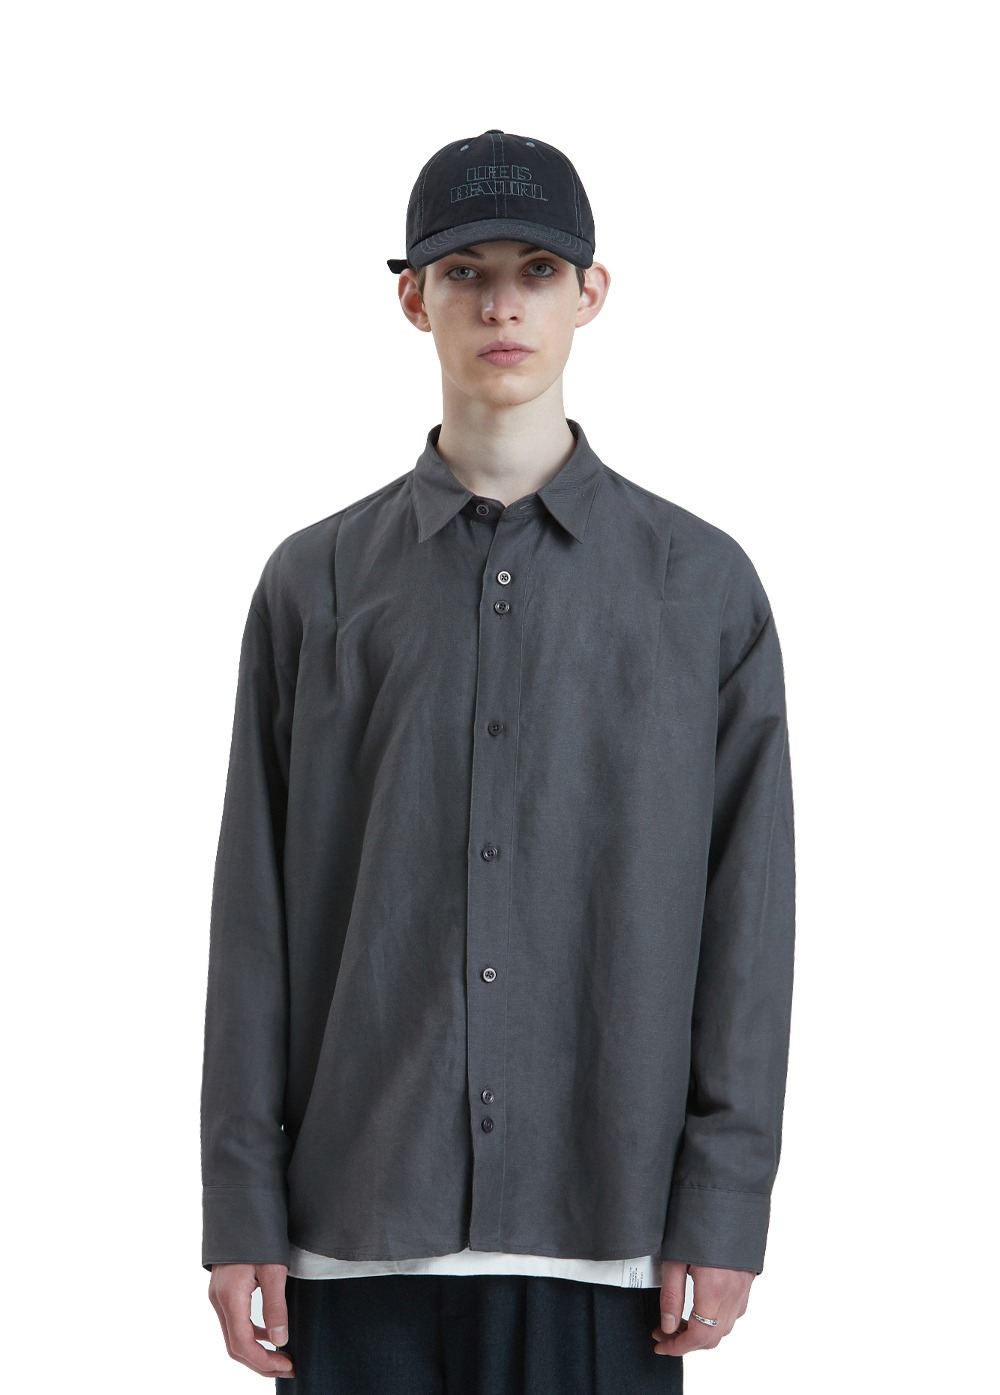 LIFUL ONE TUCK SHIRT charcoal